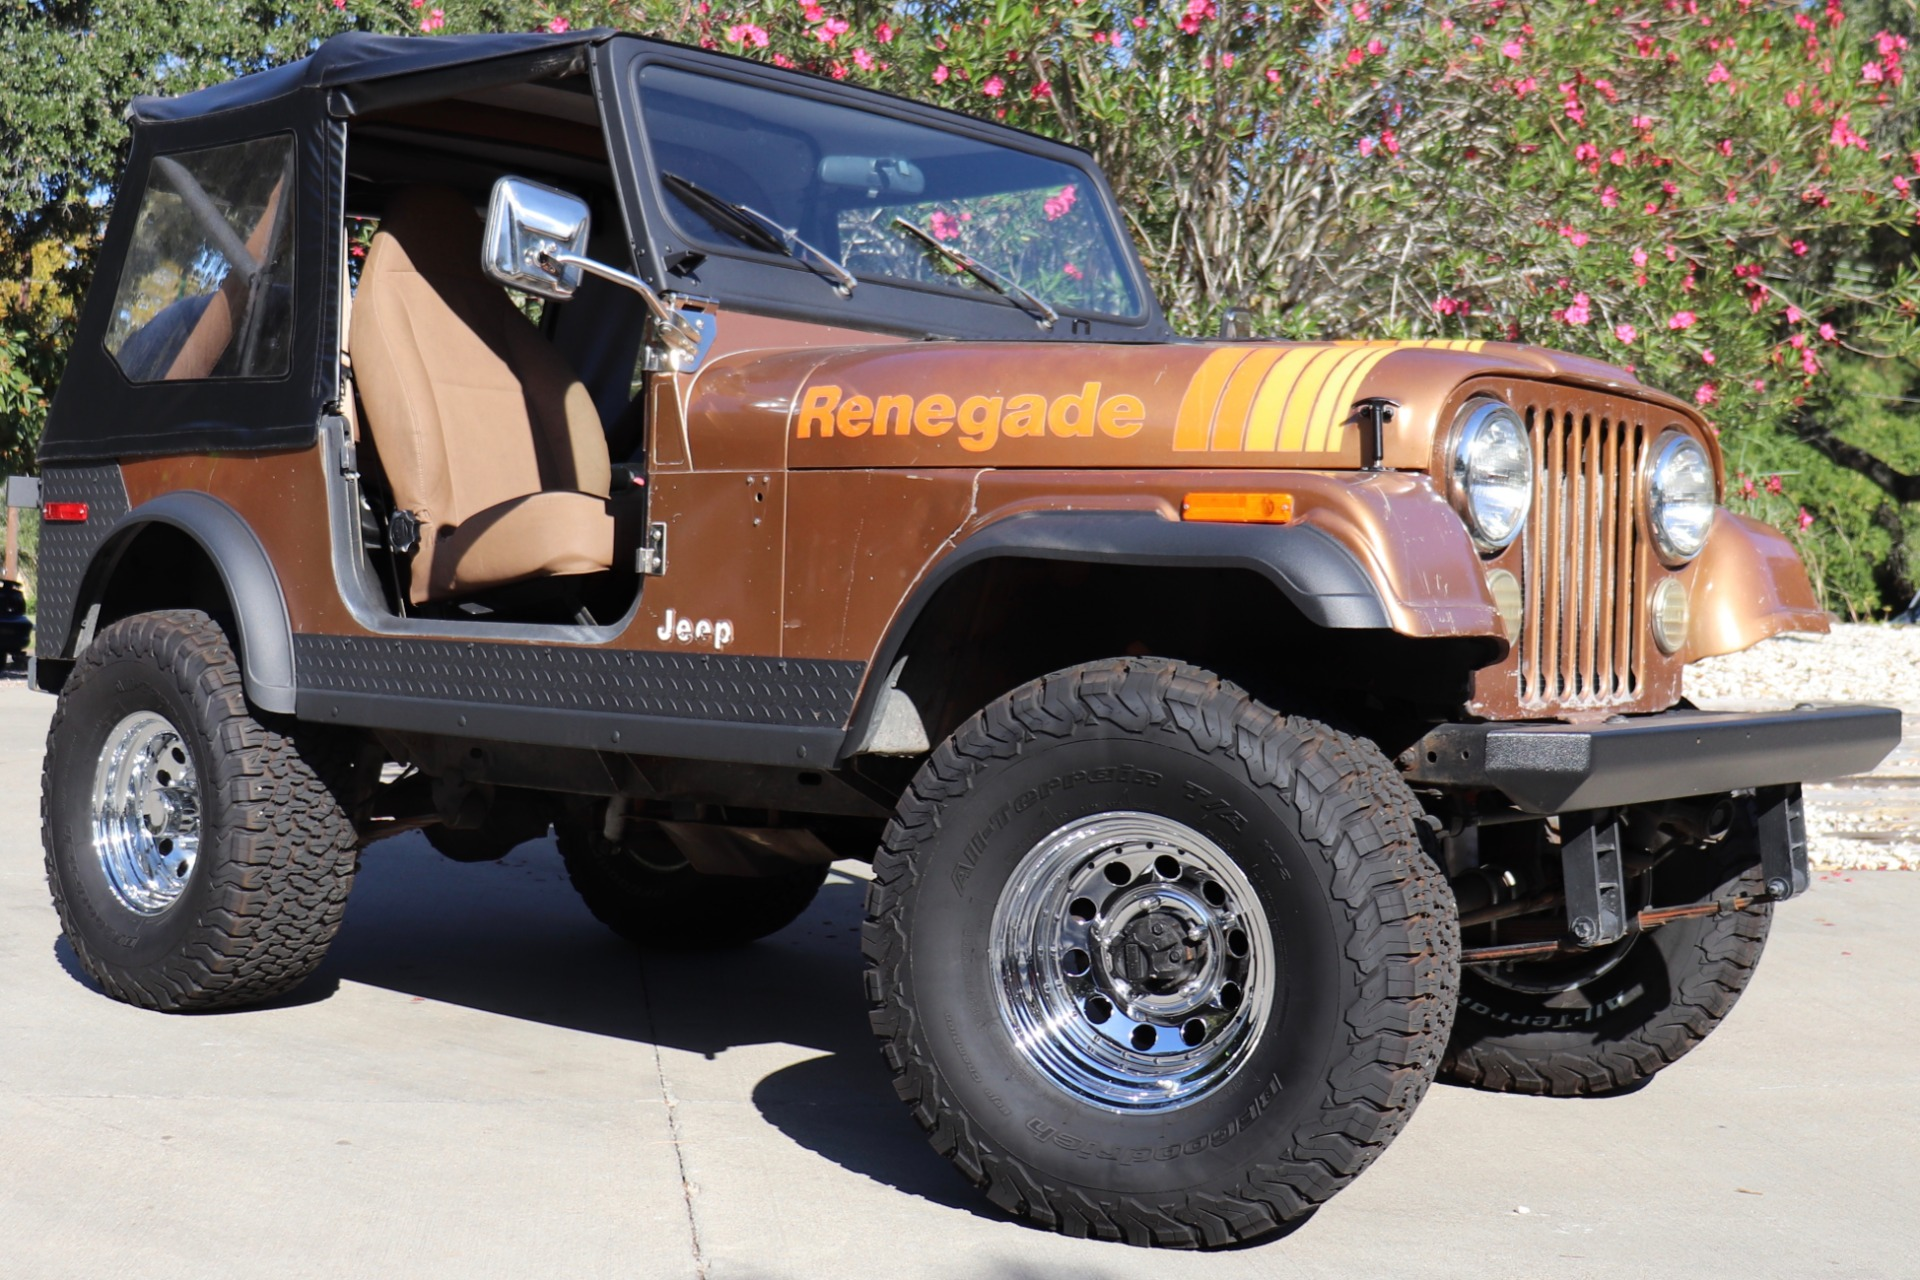 Used 1980 Jeep Cj7 Renegade For Sale   17 995